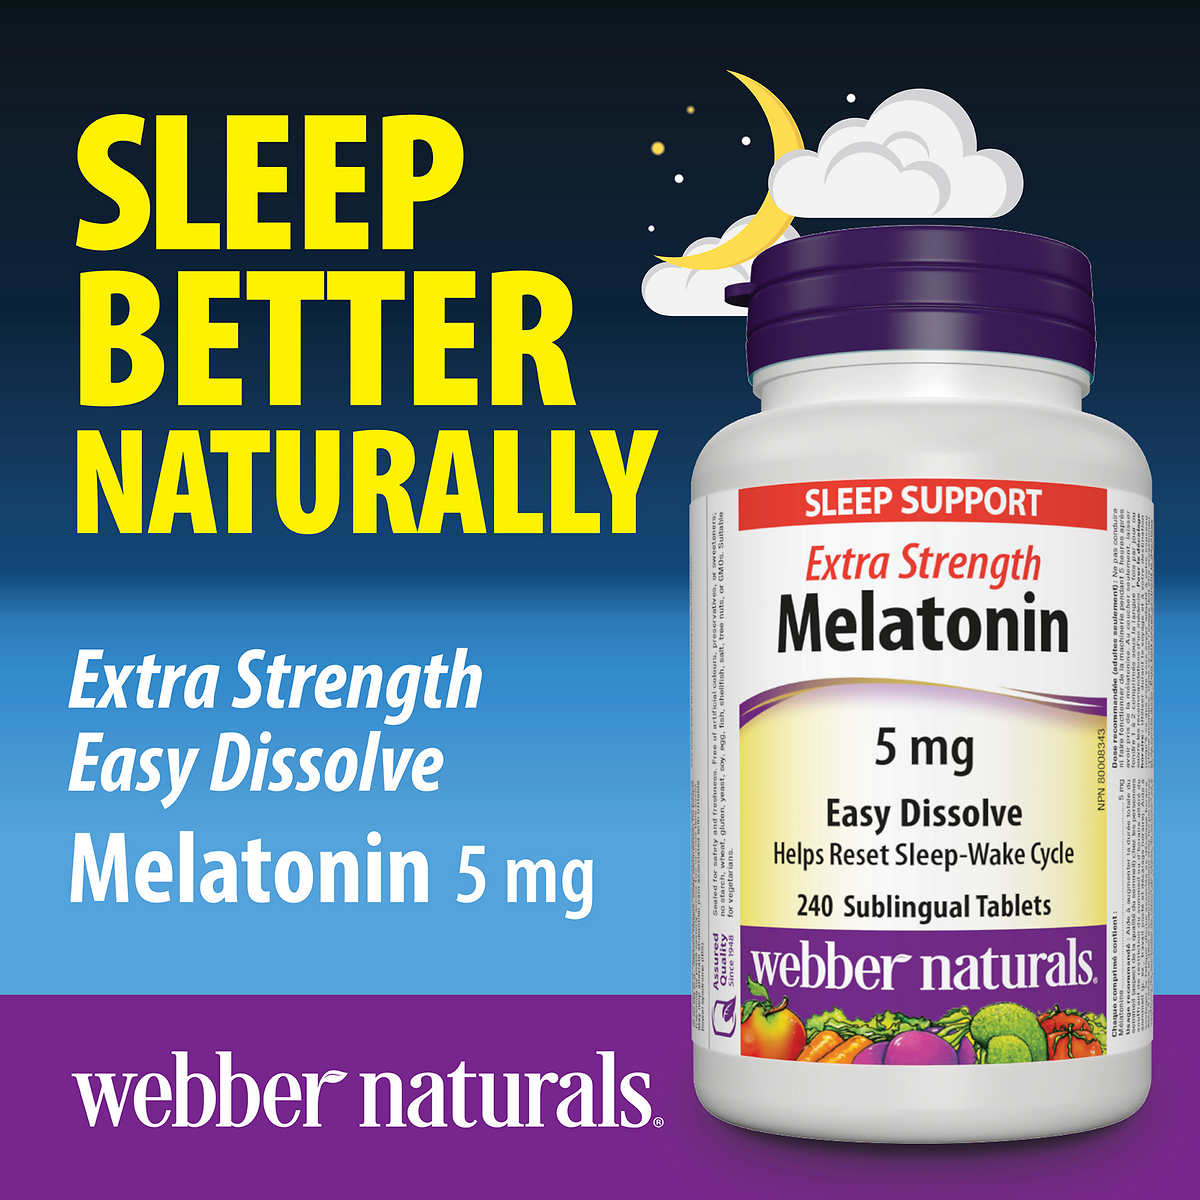 Webber Naturals 5mg Melatonin Extra Strength Easy Dissolve